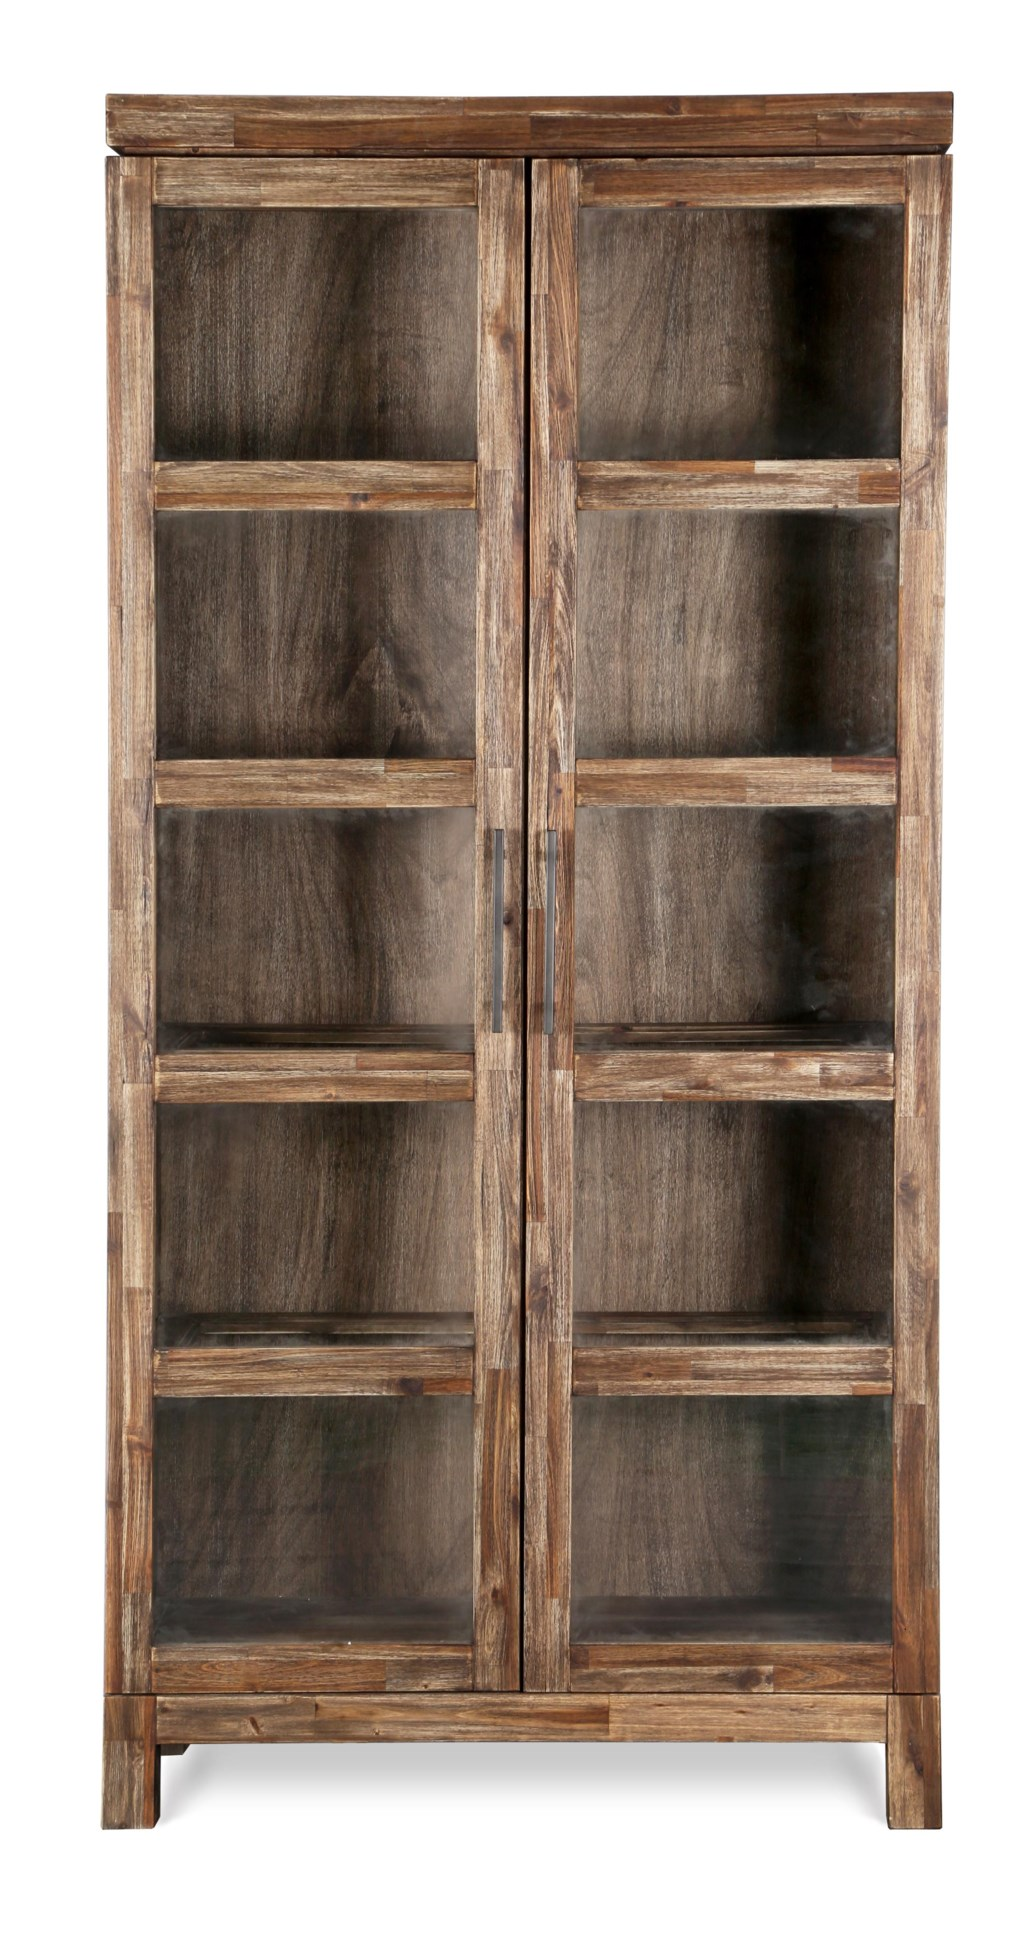 Magnussen Home Adler Contemporary Rustic Bookcase With Glass Doors And  Adjustable Display Shelves - Miskelly Furniture - Closed Bookcase